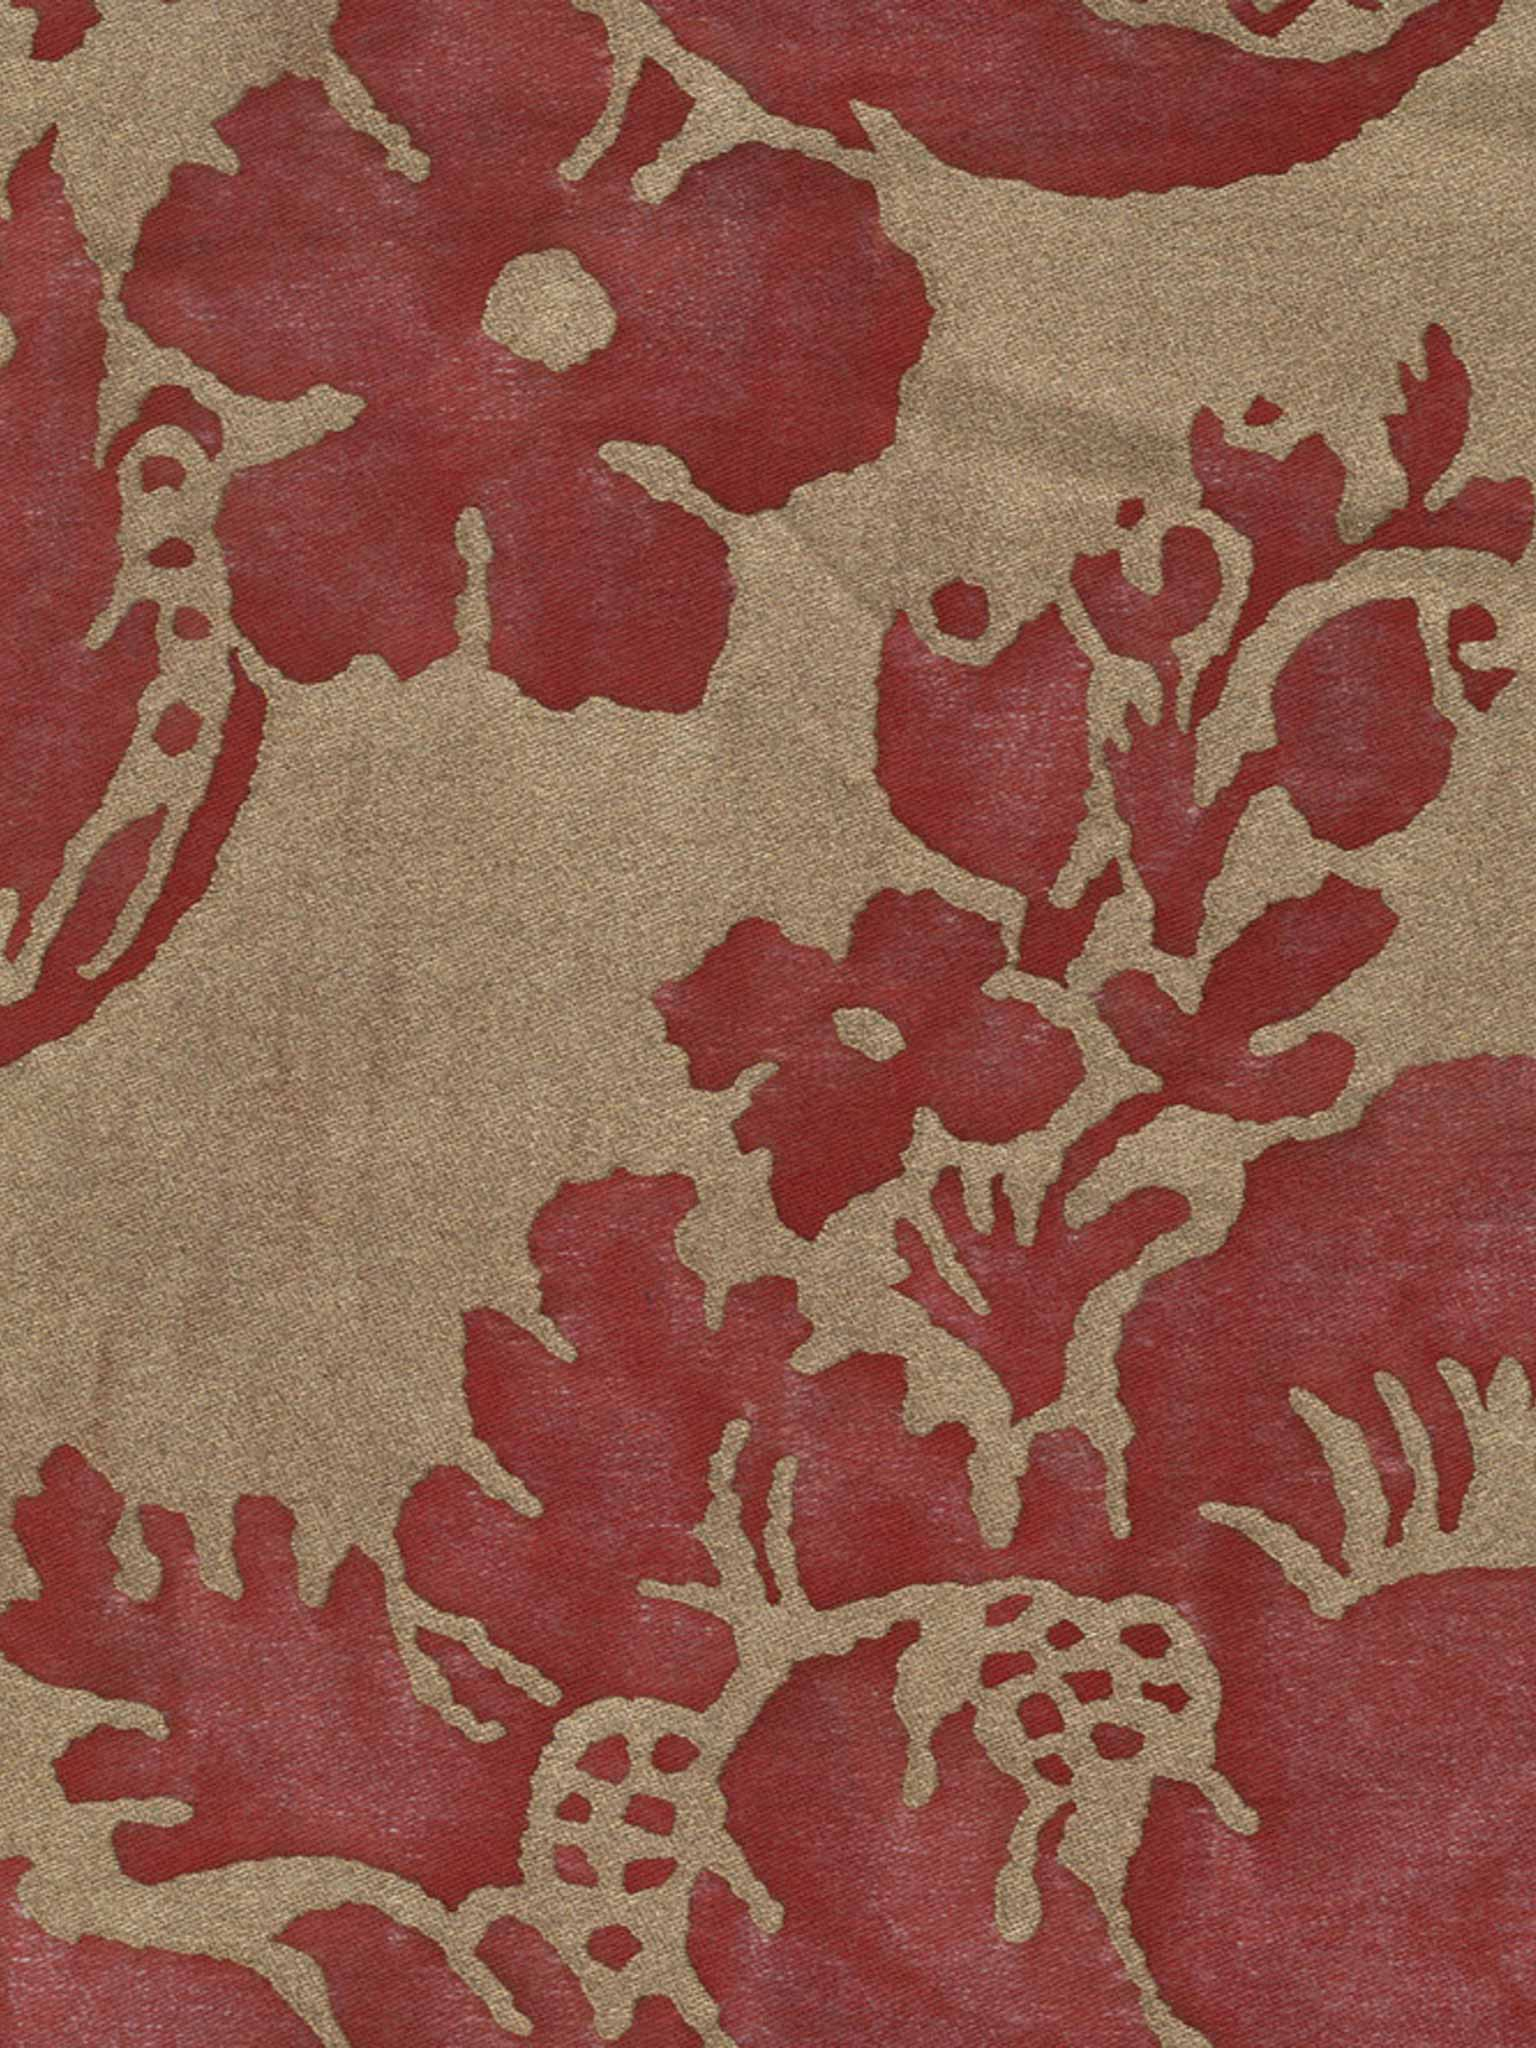 Vivaldi in red gold fortuny 5289 vivaldi in red gold fortuny printed cottons sisterspd